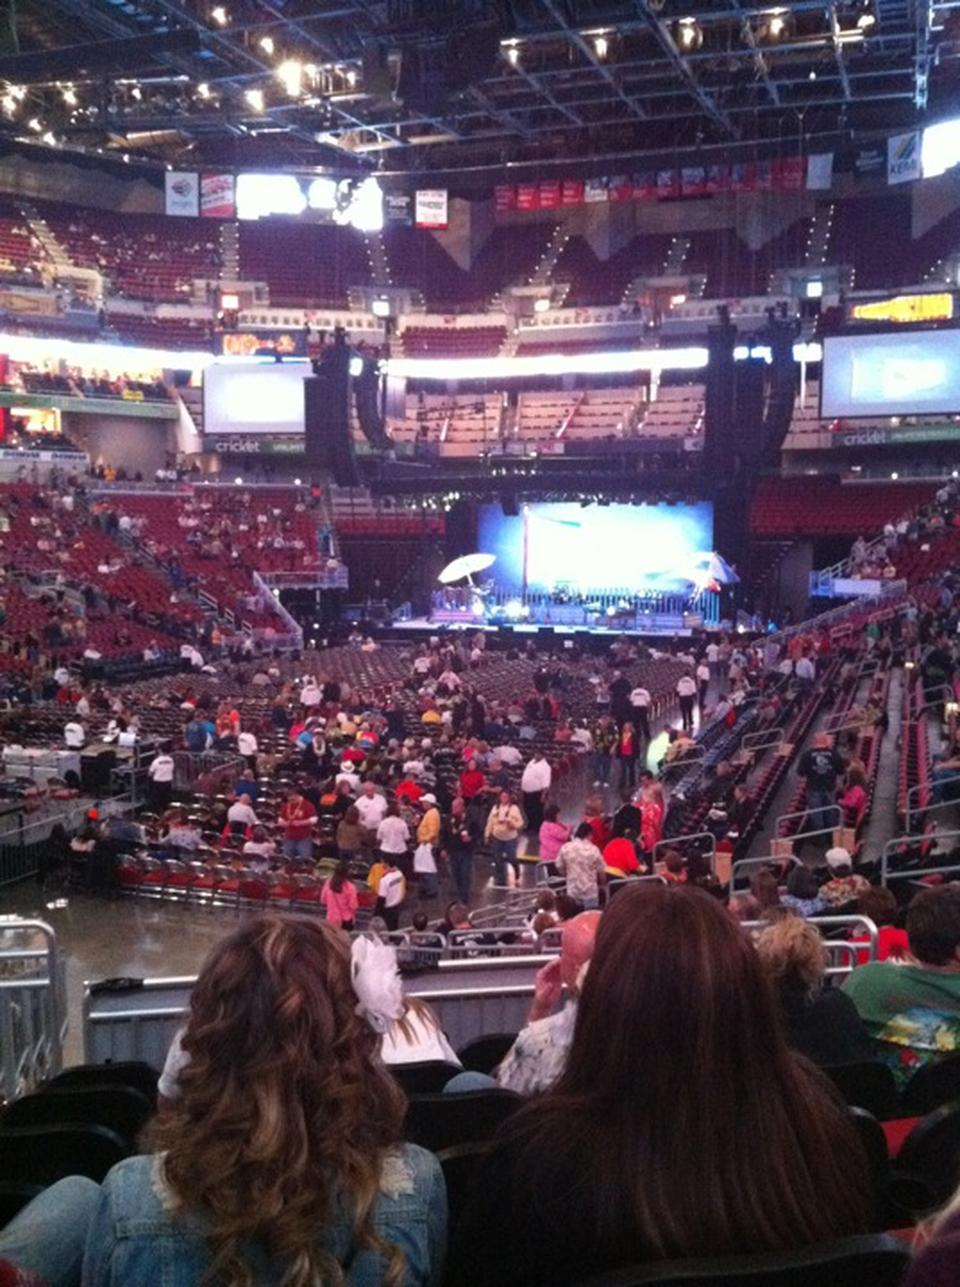 KFC Yum Center Section 109 Concert Seating